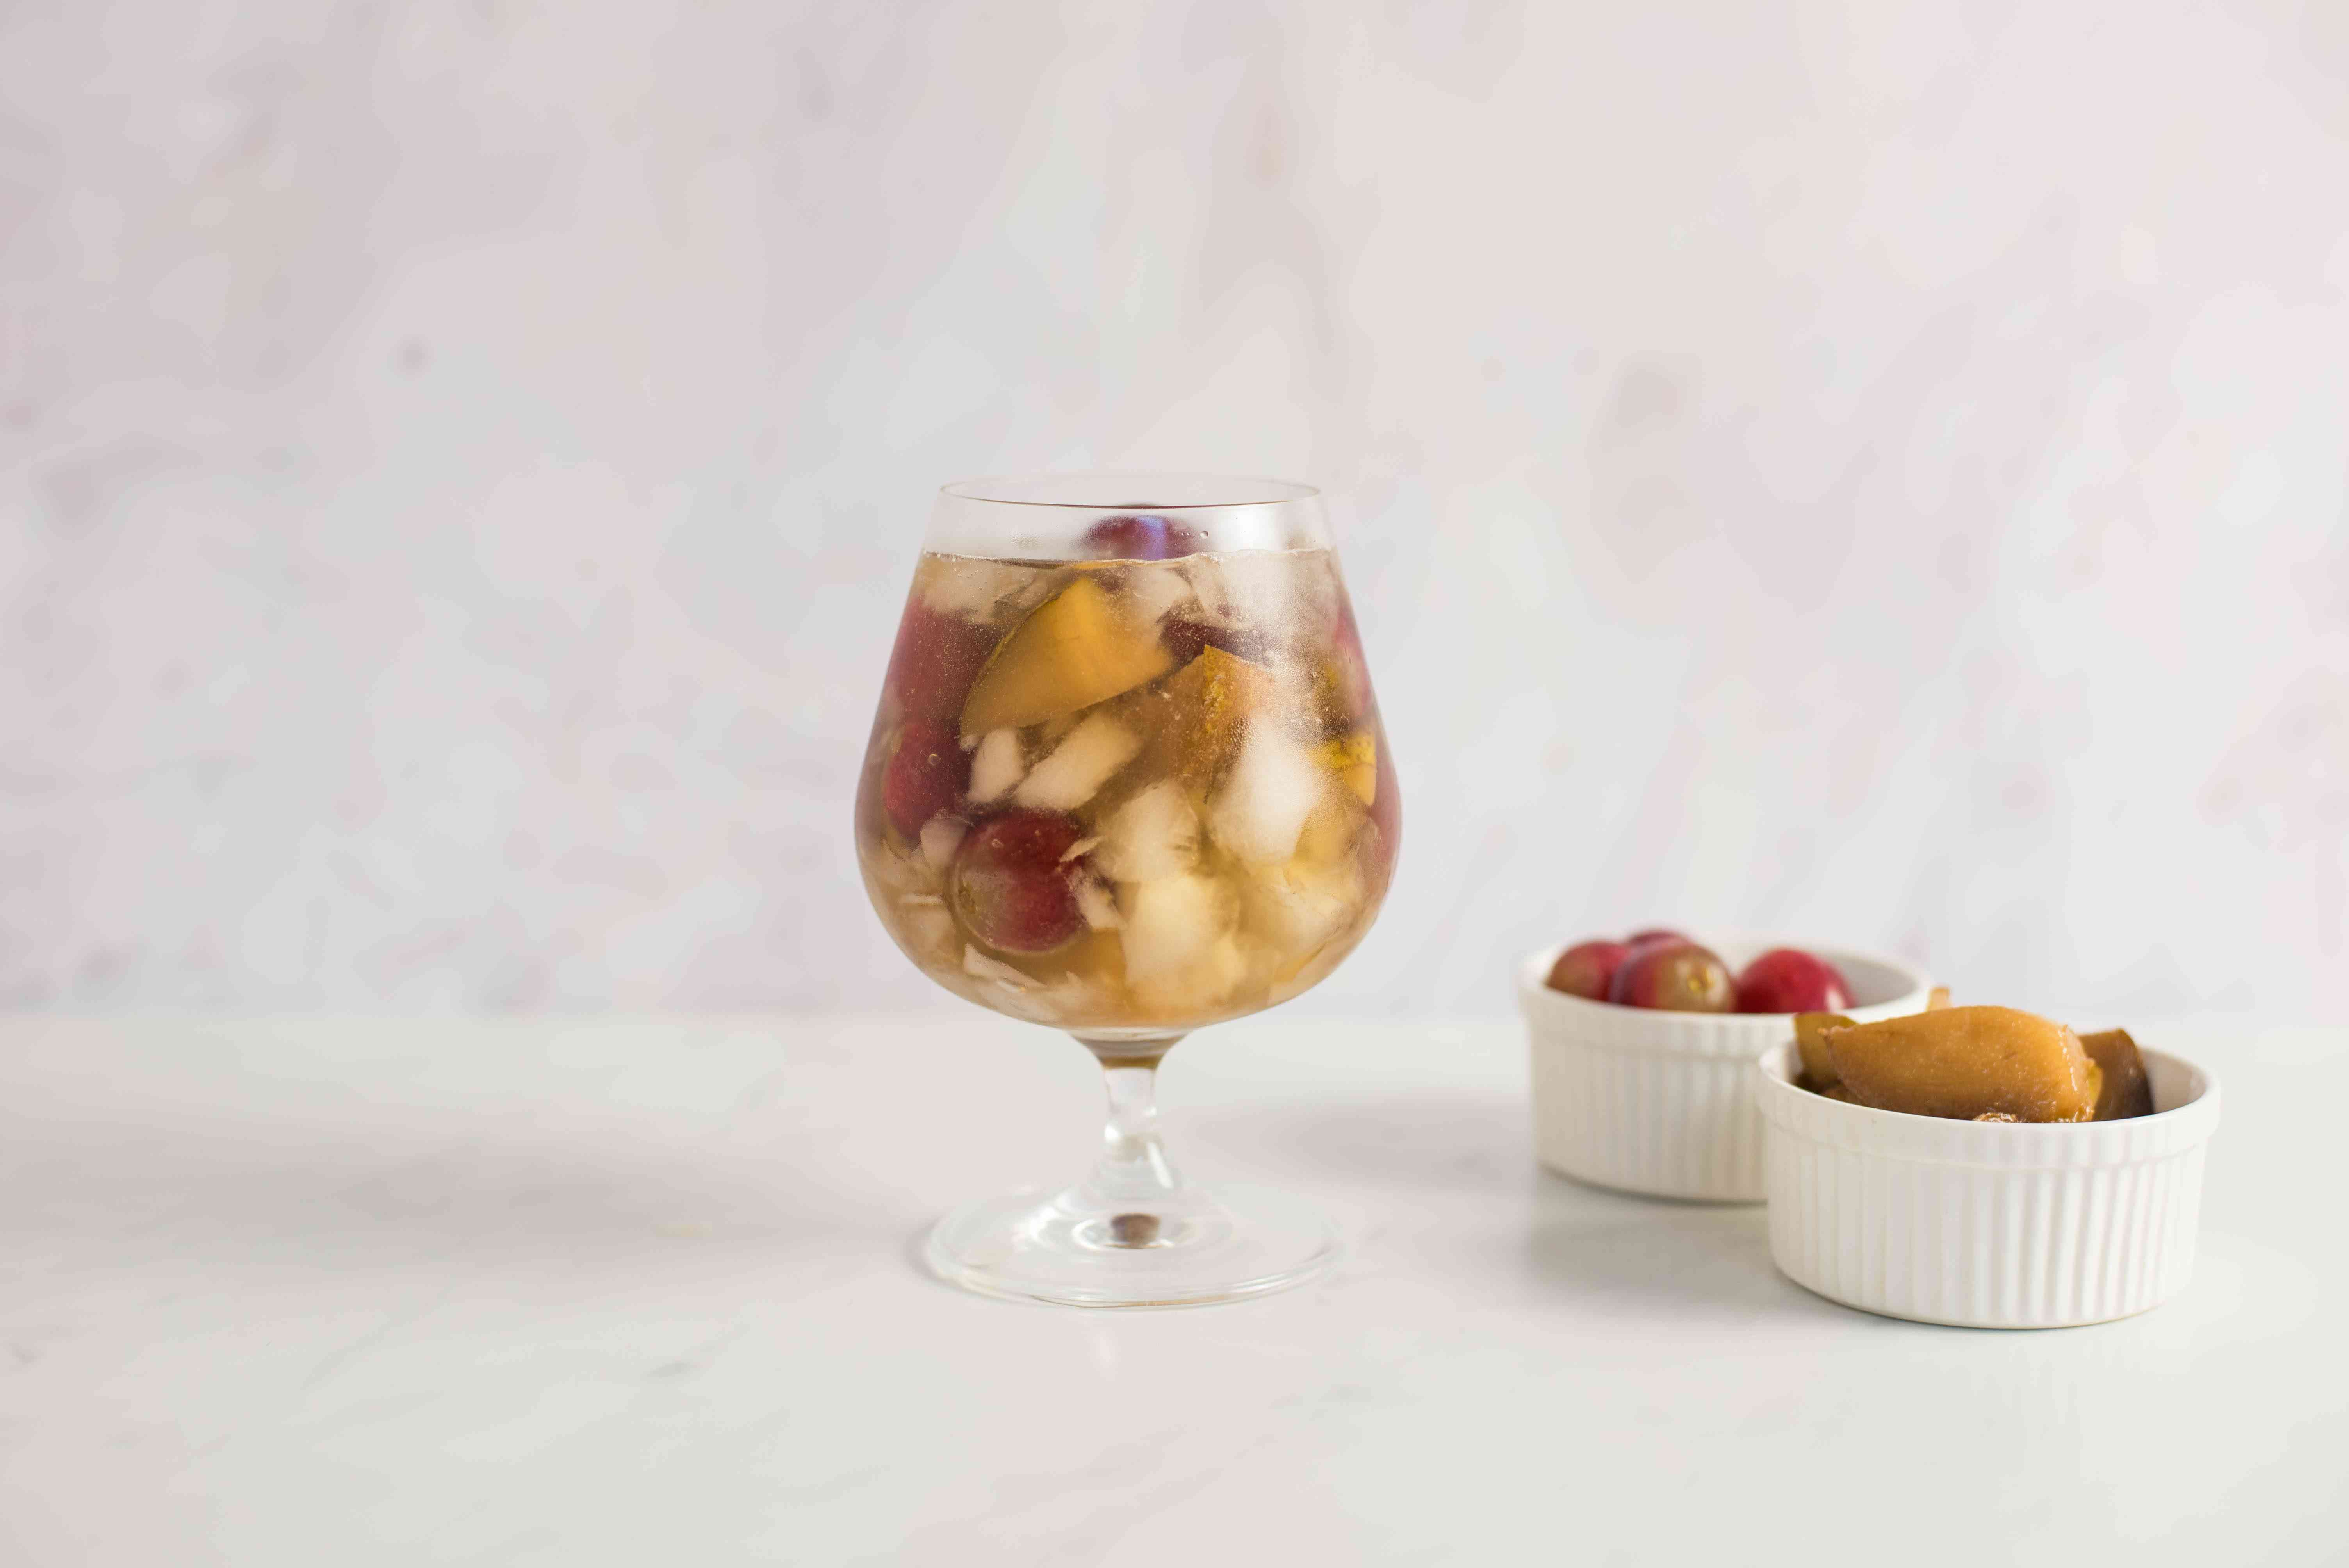 Top with drunken pear pieces